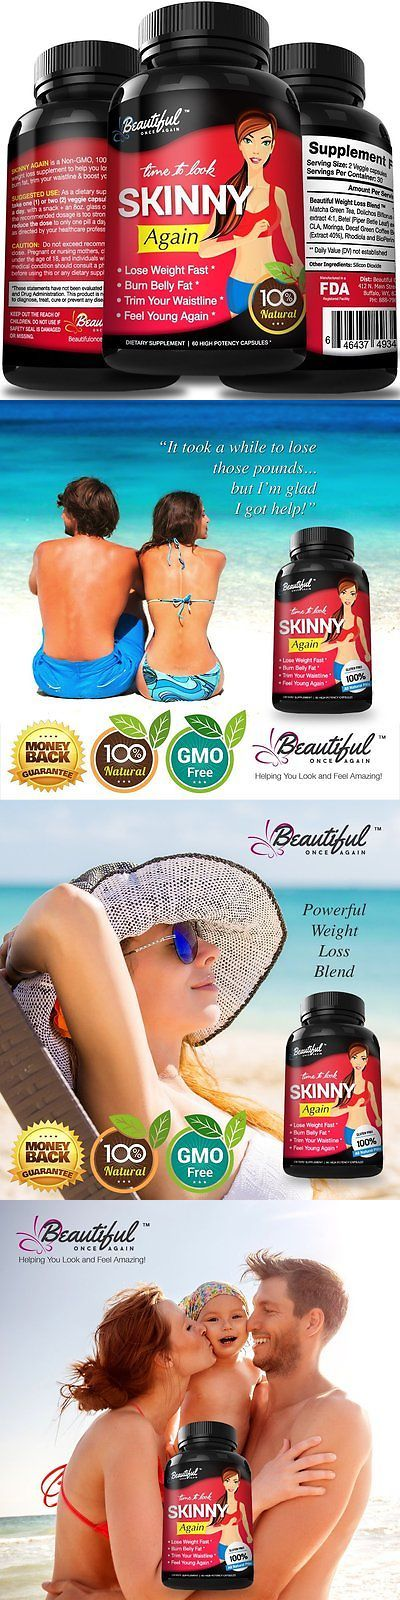 Appetite Control Suppressants: Diet Pills Skinny Again, Lose Belly Fat Fast 100% Natural, Non-Gmo, Gluten Free BUY IT NOW ONLY: $53.95